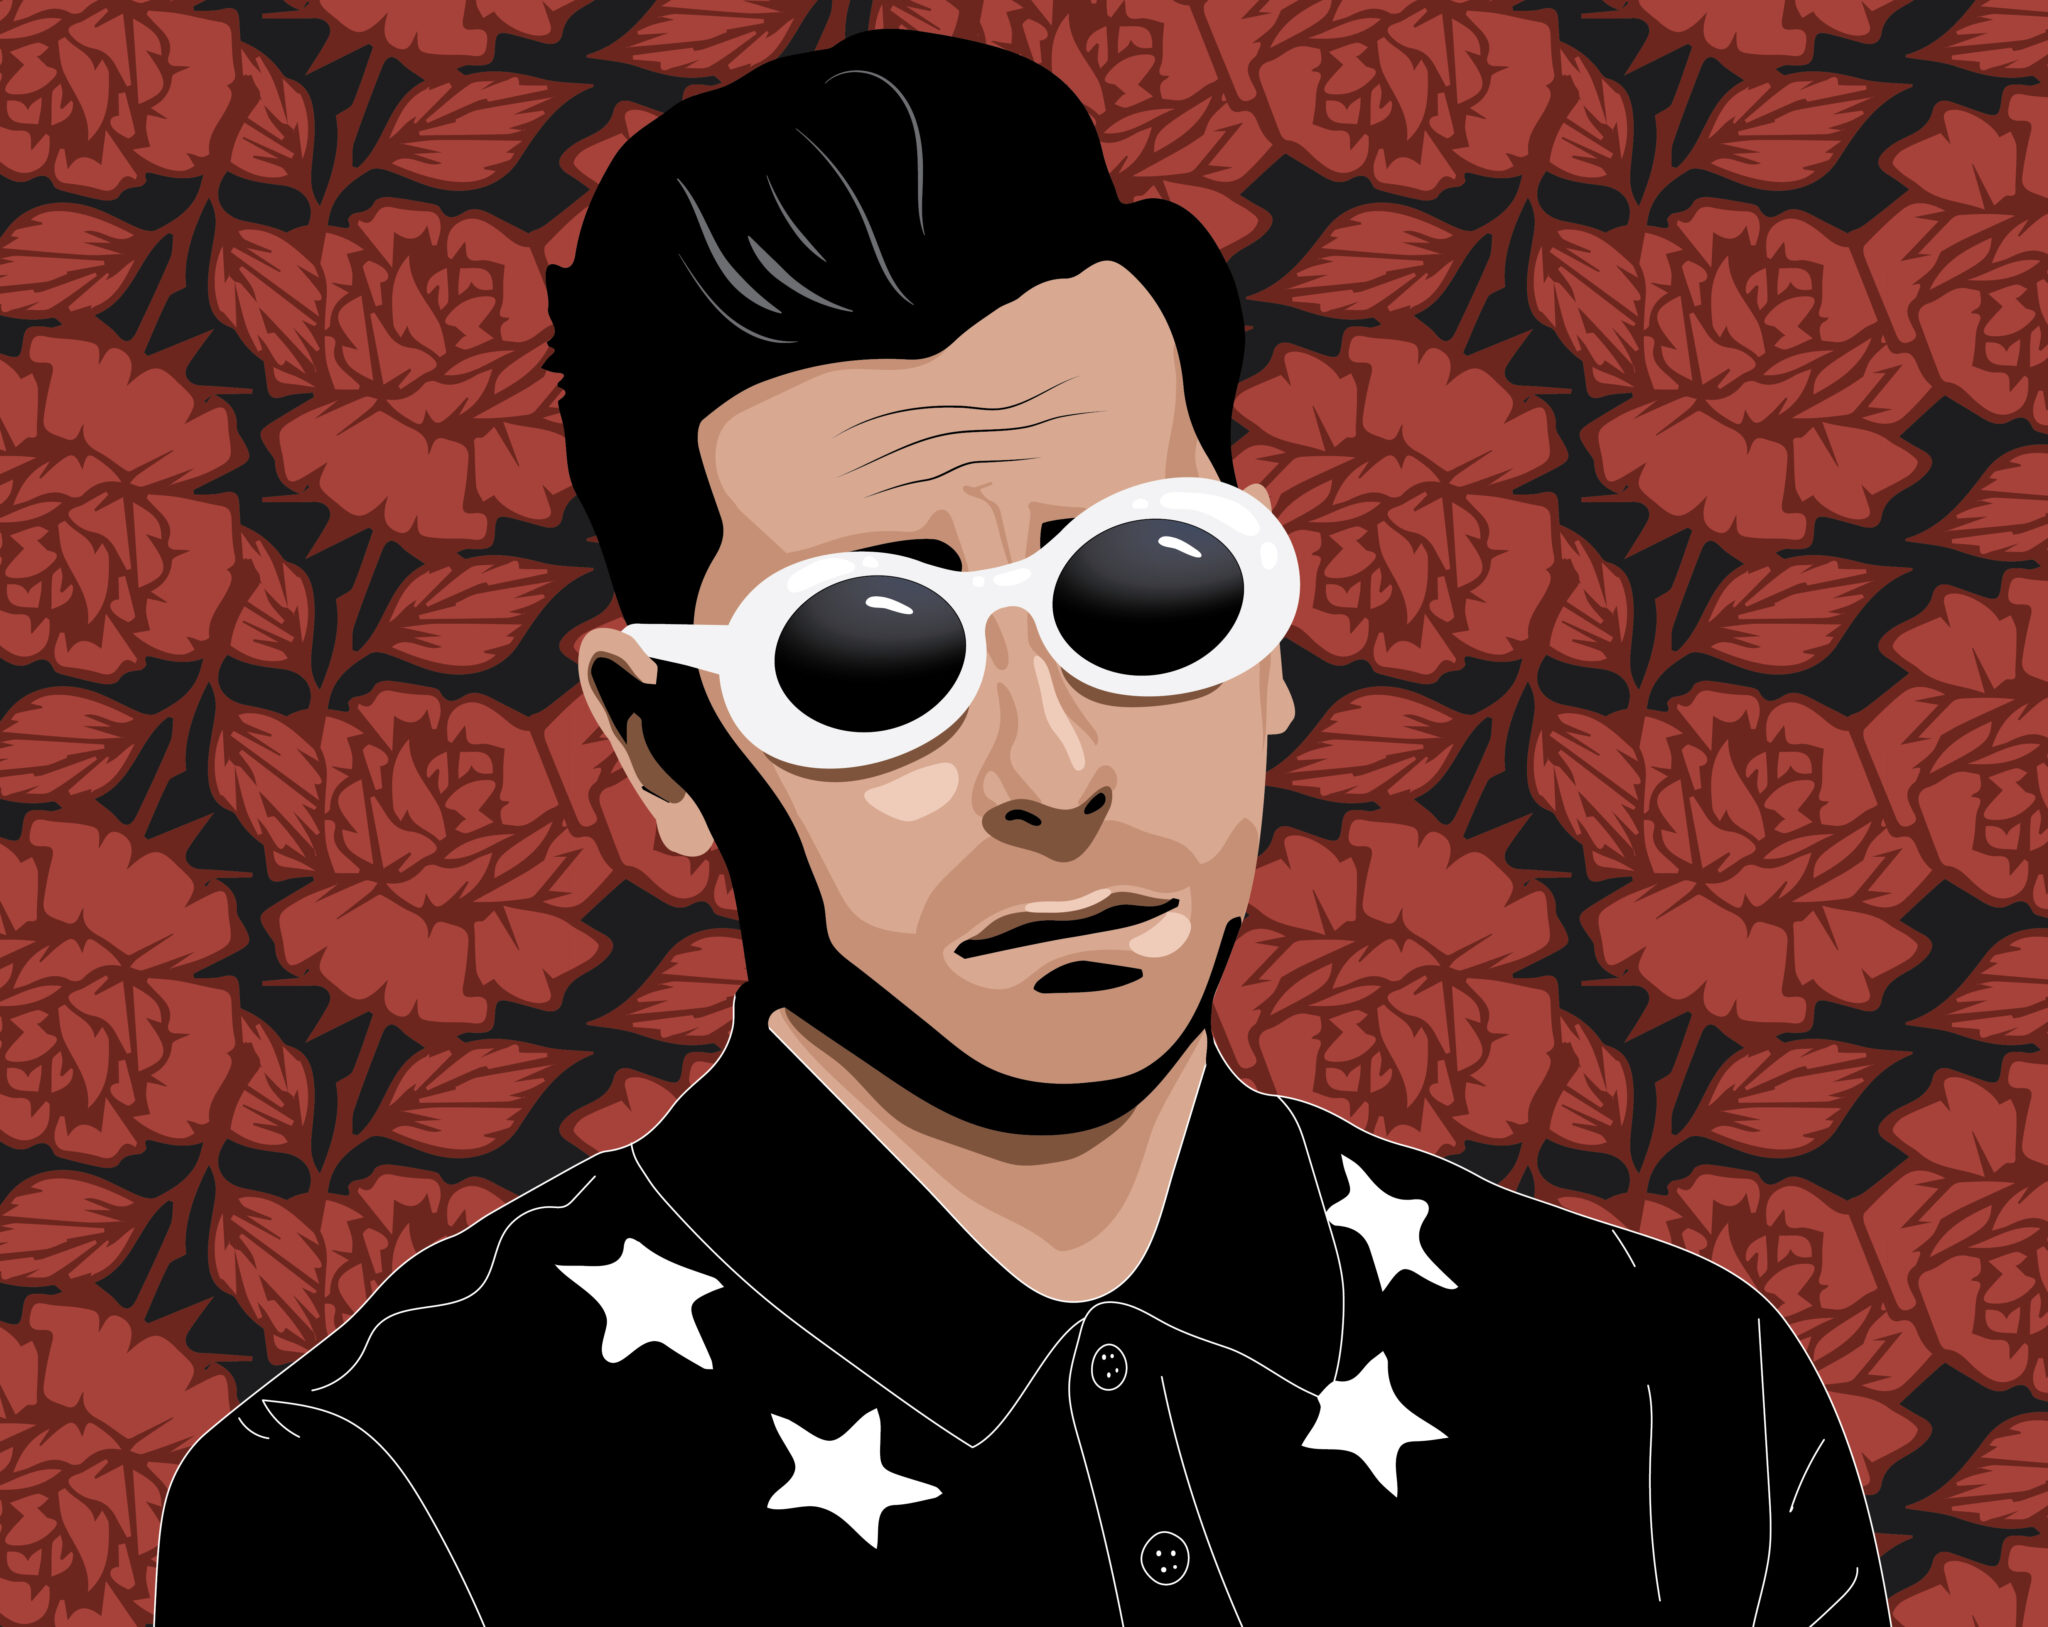 Digital illustration of David Rose from Schitt's Creek, wearing white sunglasses and a black Givenchy polo shirt with stars at the collar.